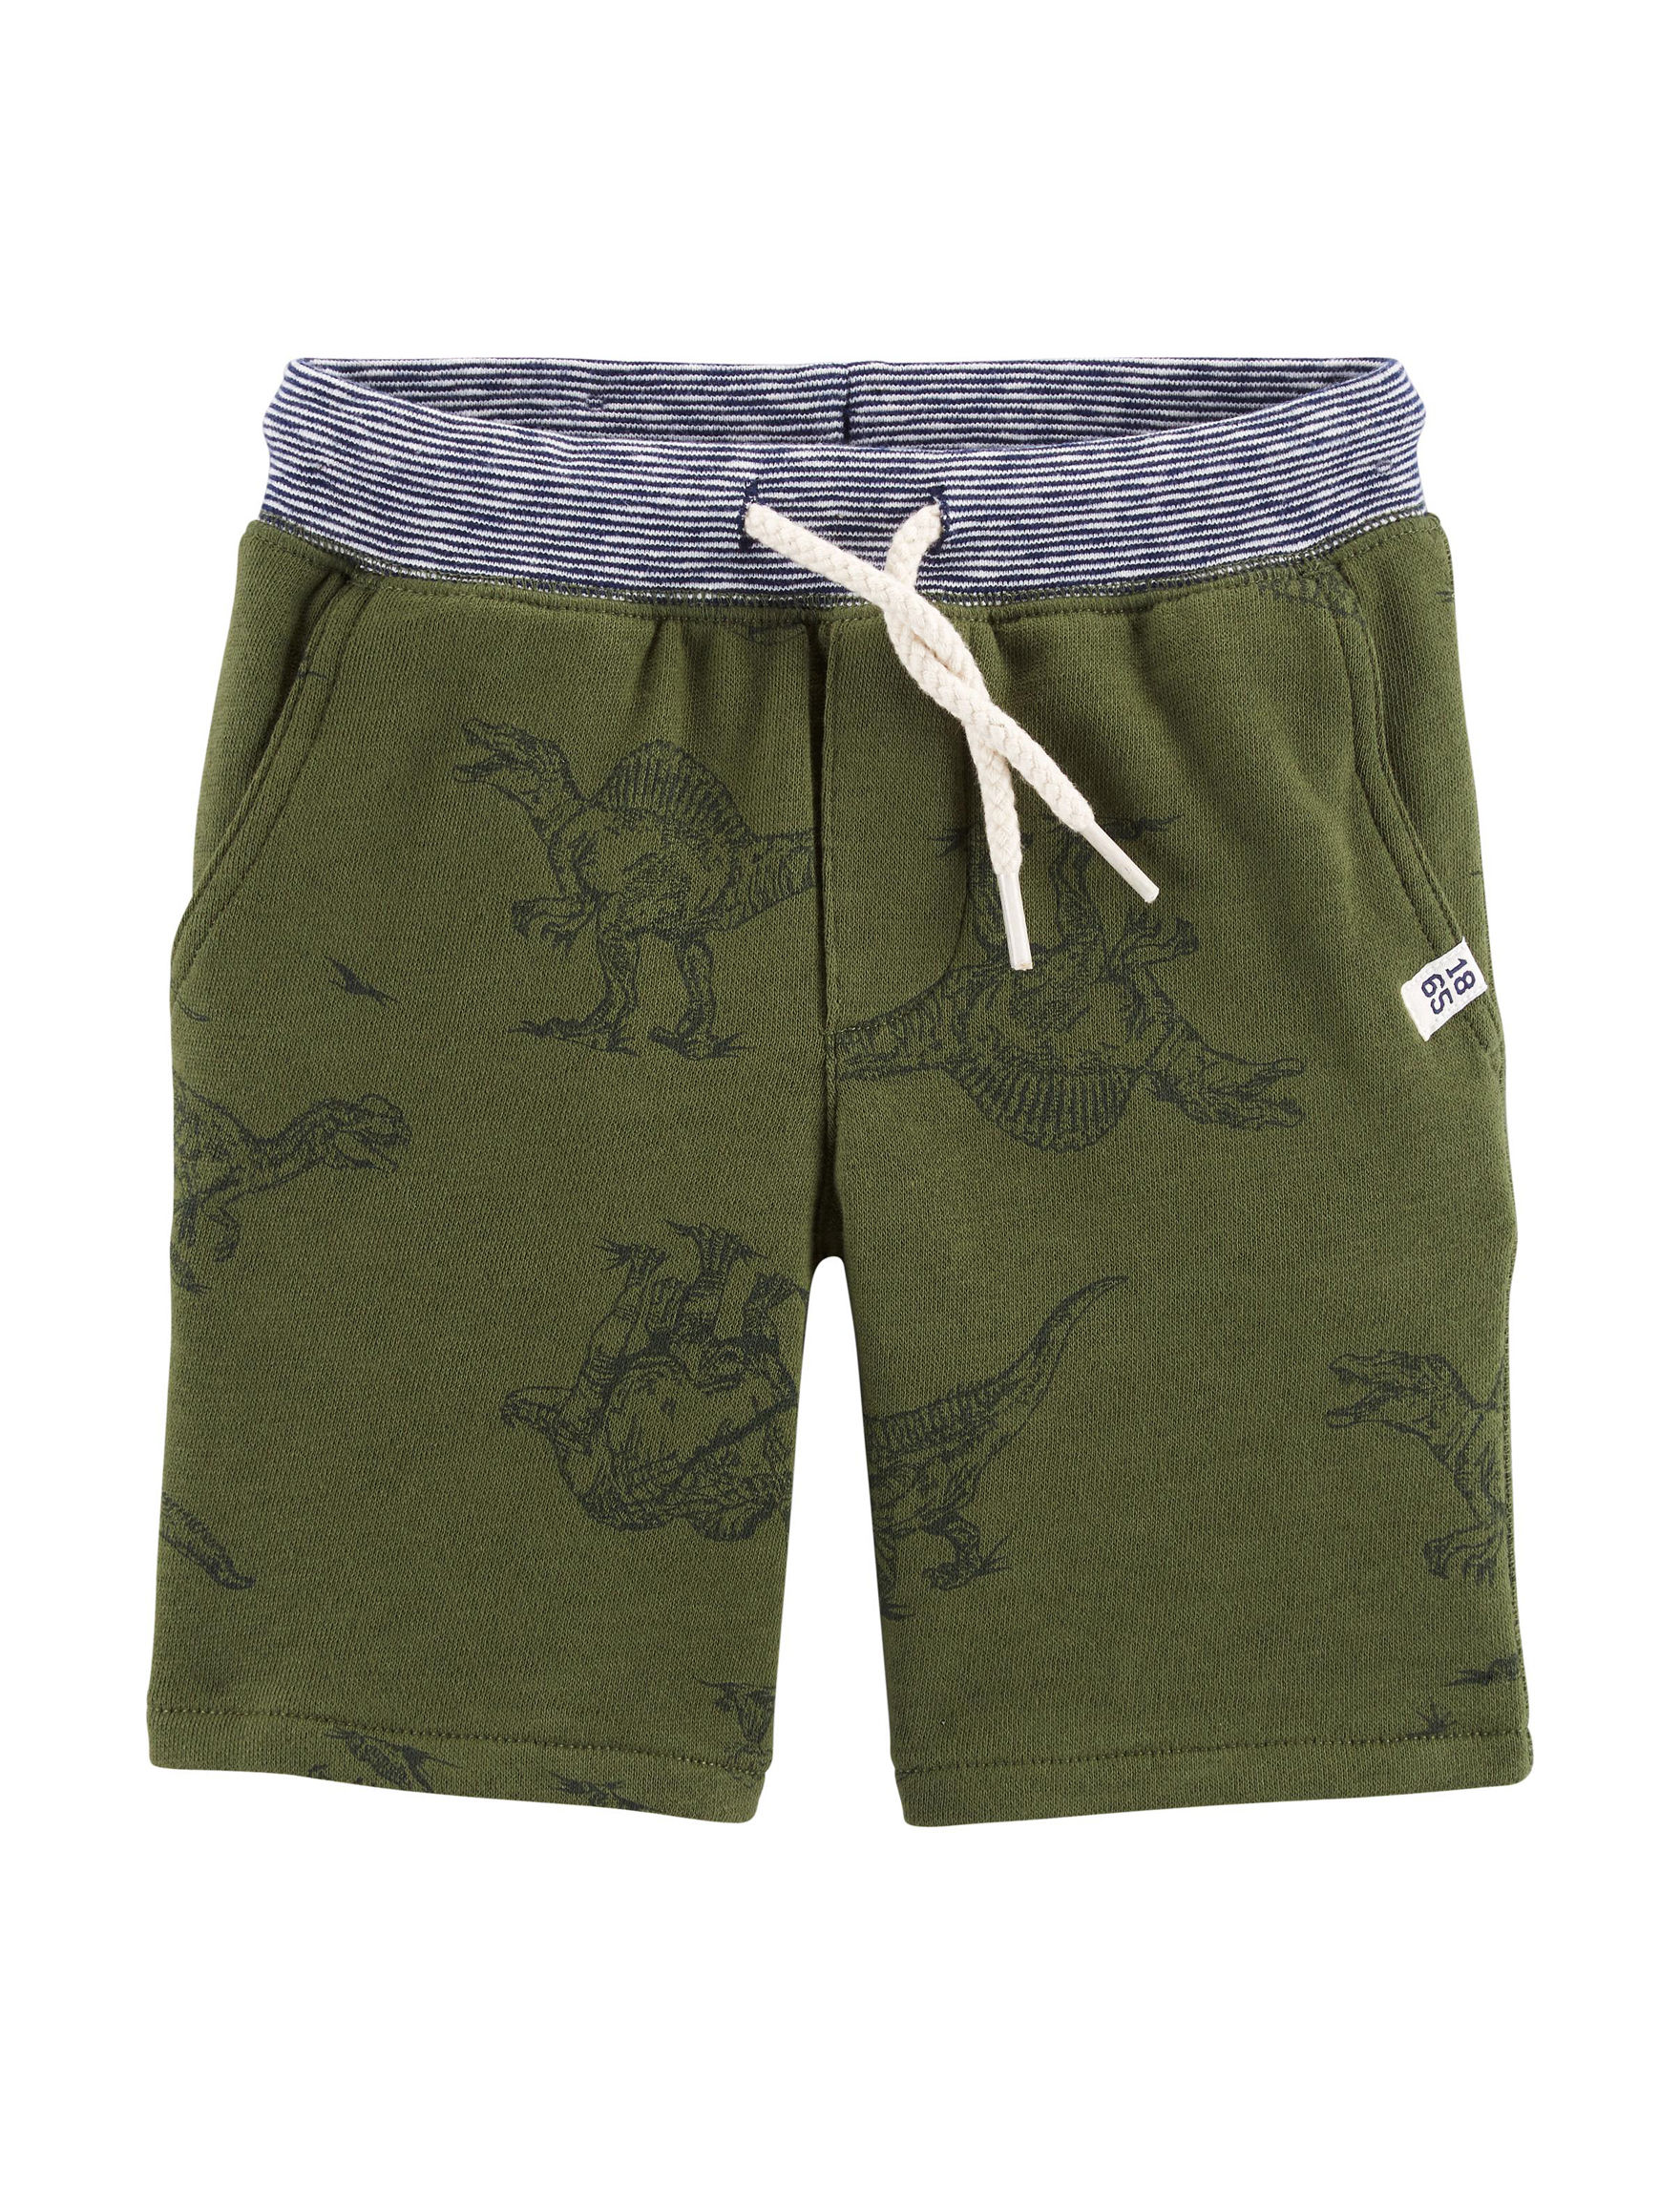 Carter's Army Green